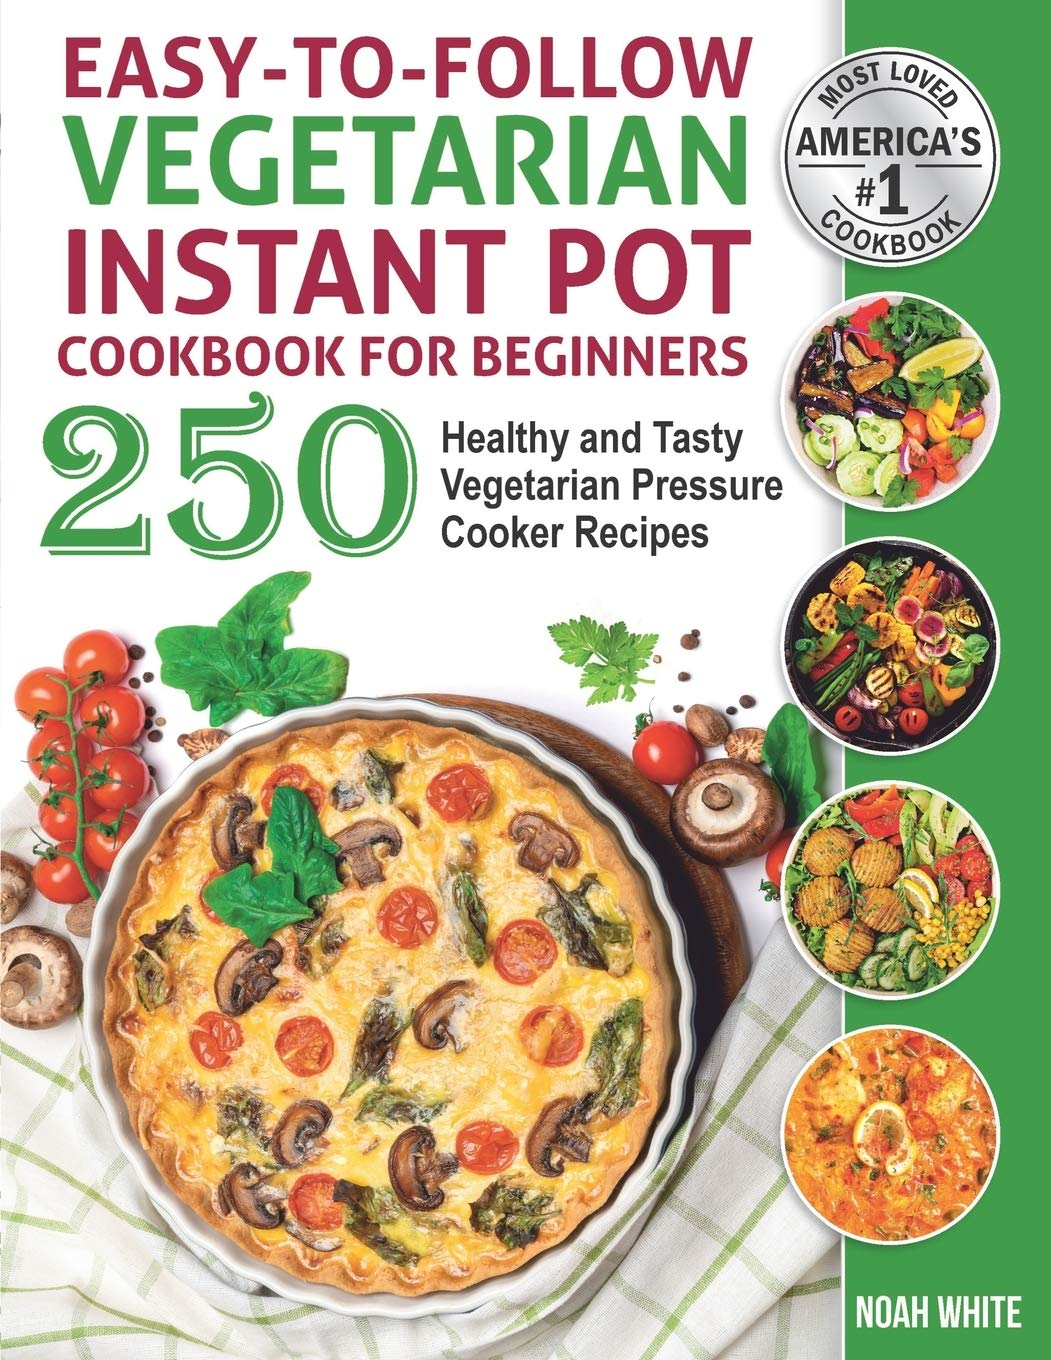 Easy to Follow Vegetarian Instant Pot Cookbook for Beginners: 250 Healthy and Tasty Vegetarian Pressure Cooker Recipes.: 1...